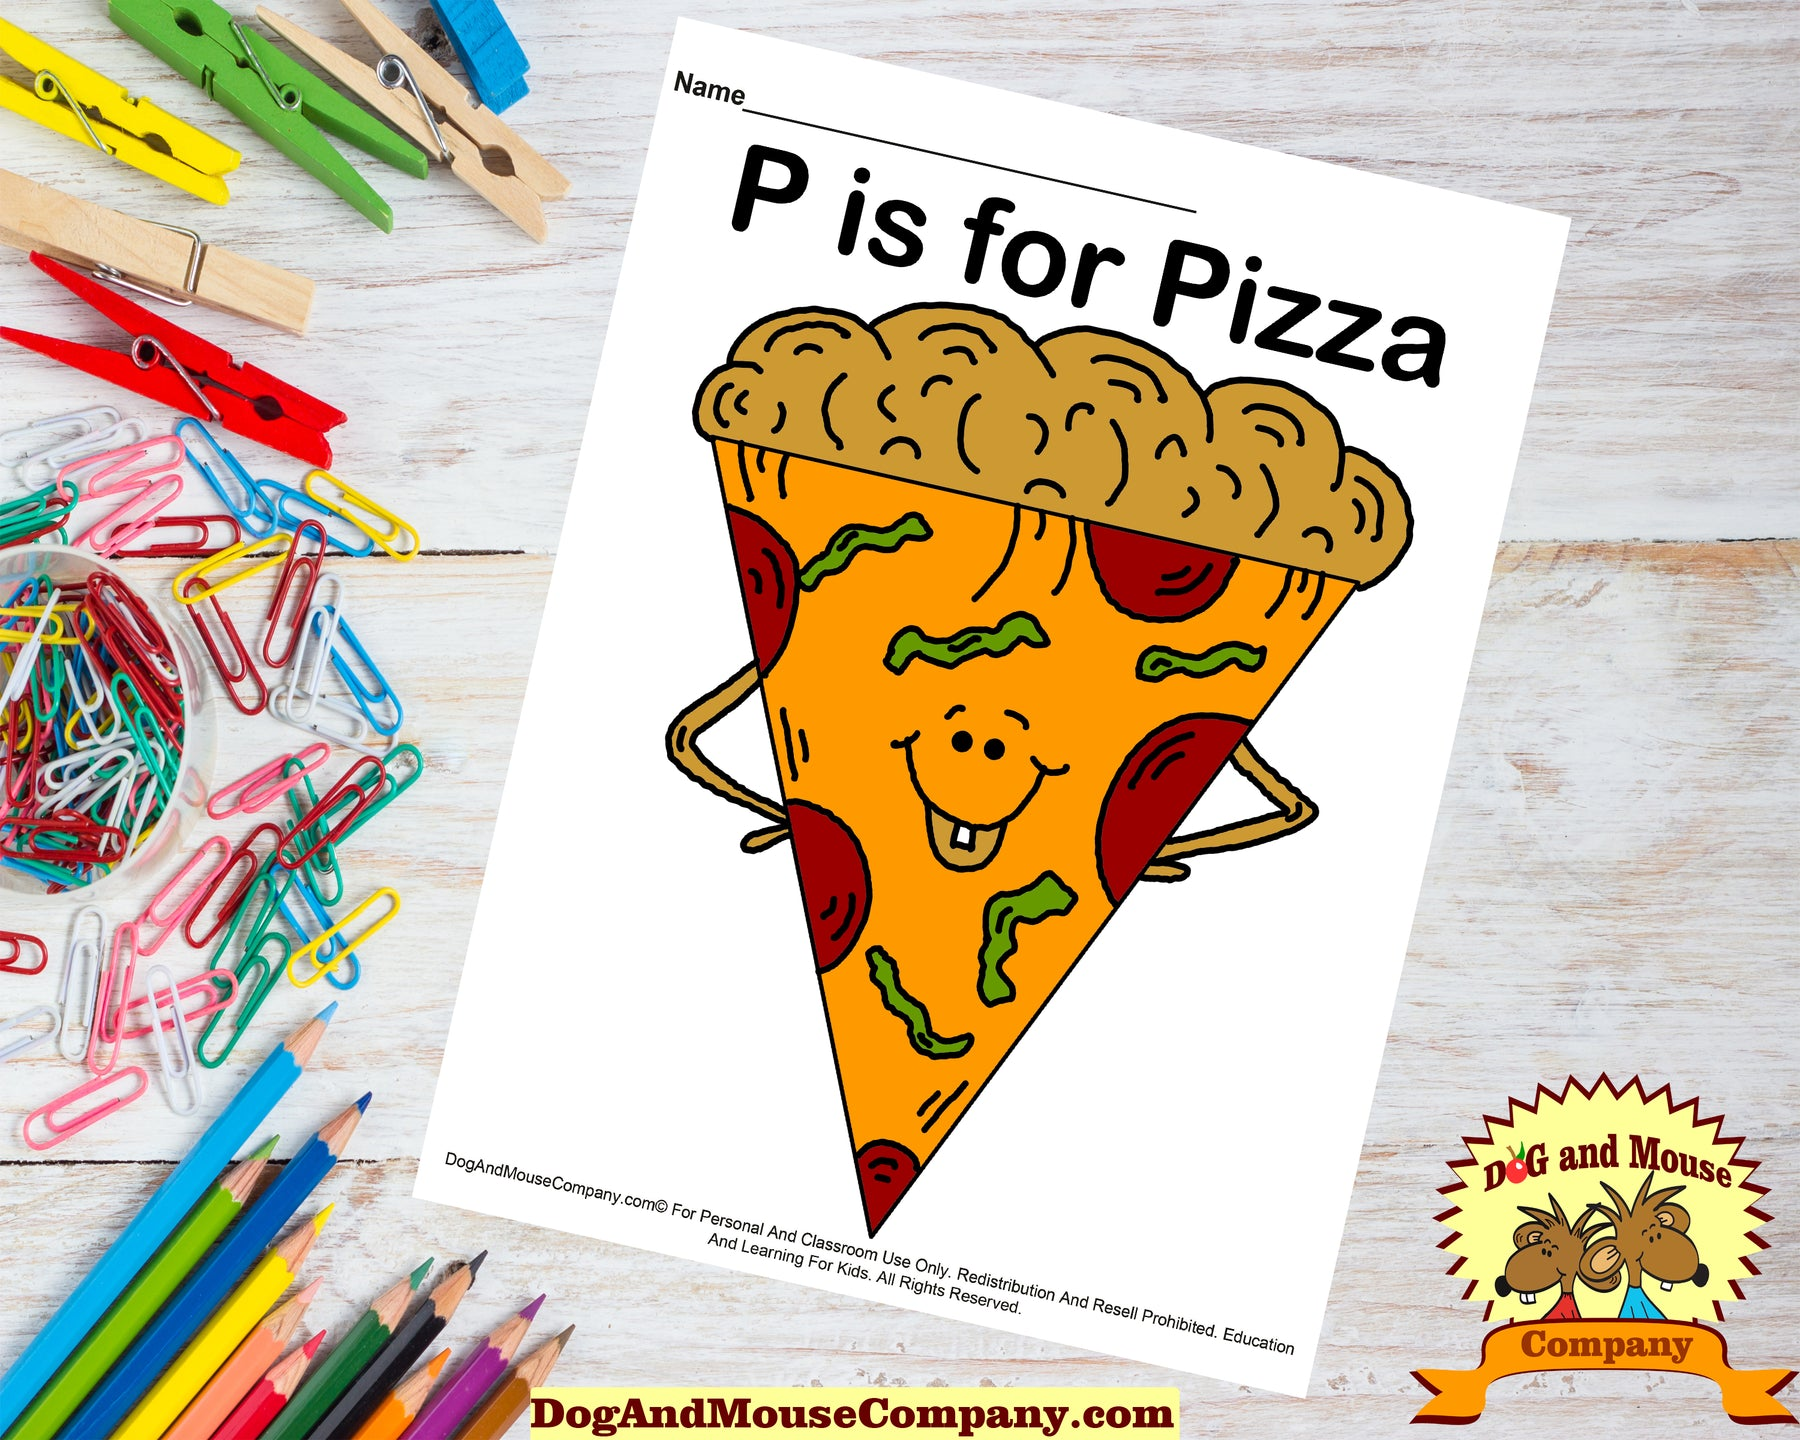 P Is For Pizza Colored Template | Learn Your ABC's Worksheet | Printable Digital Download by Dog And Mouse Company